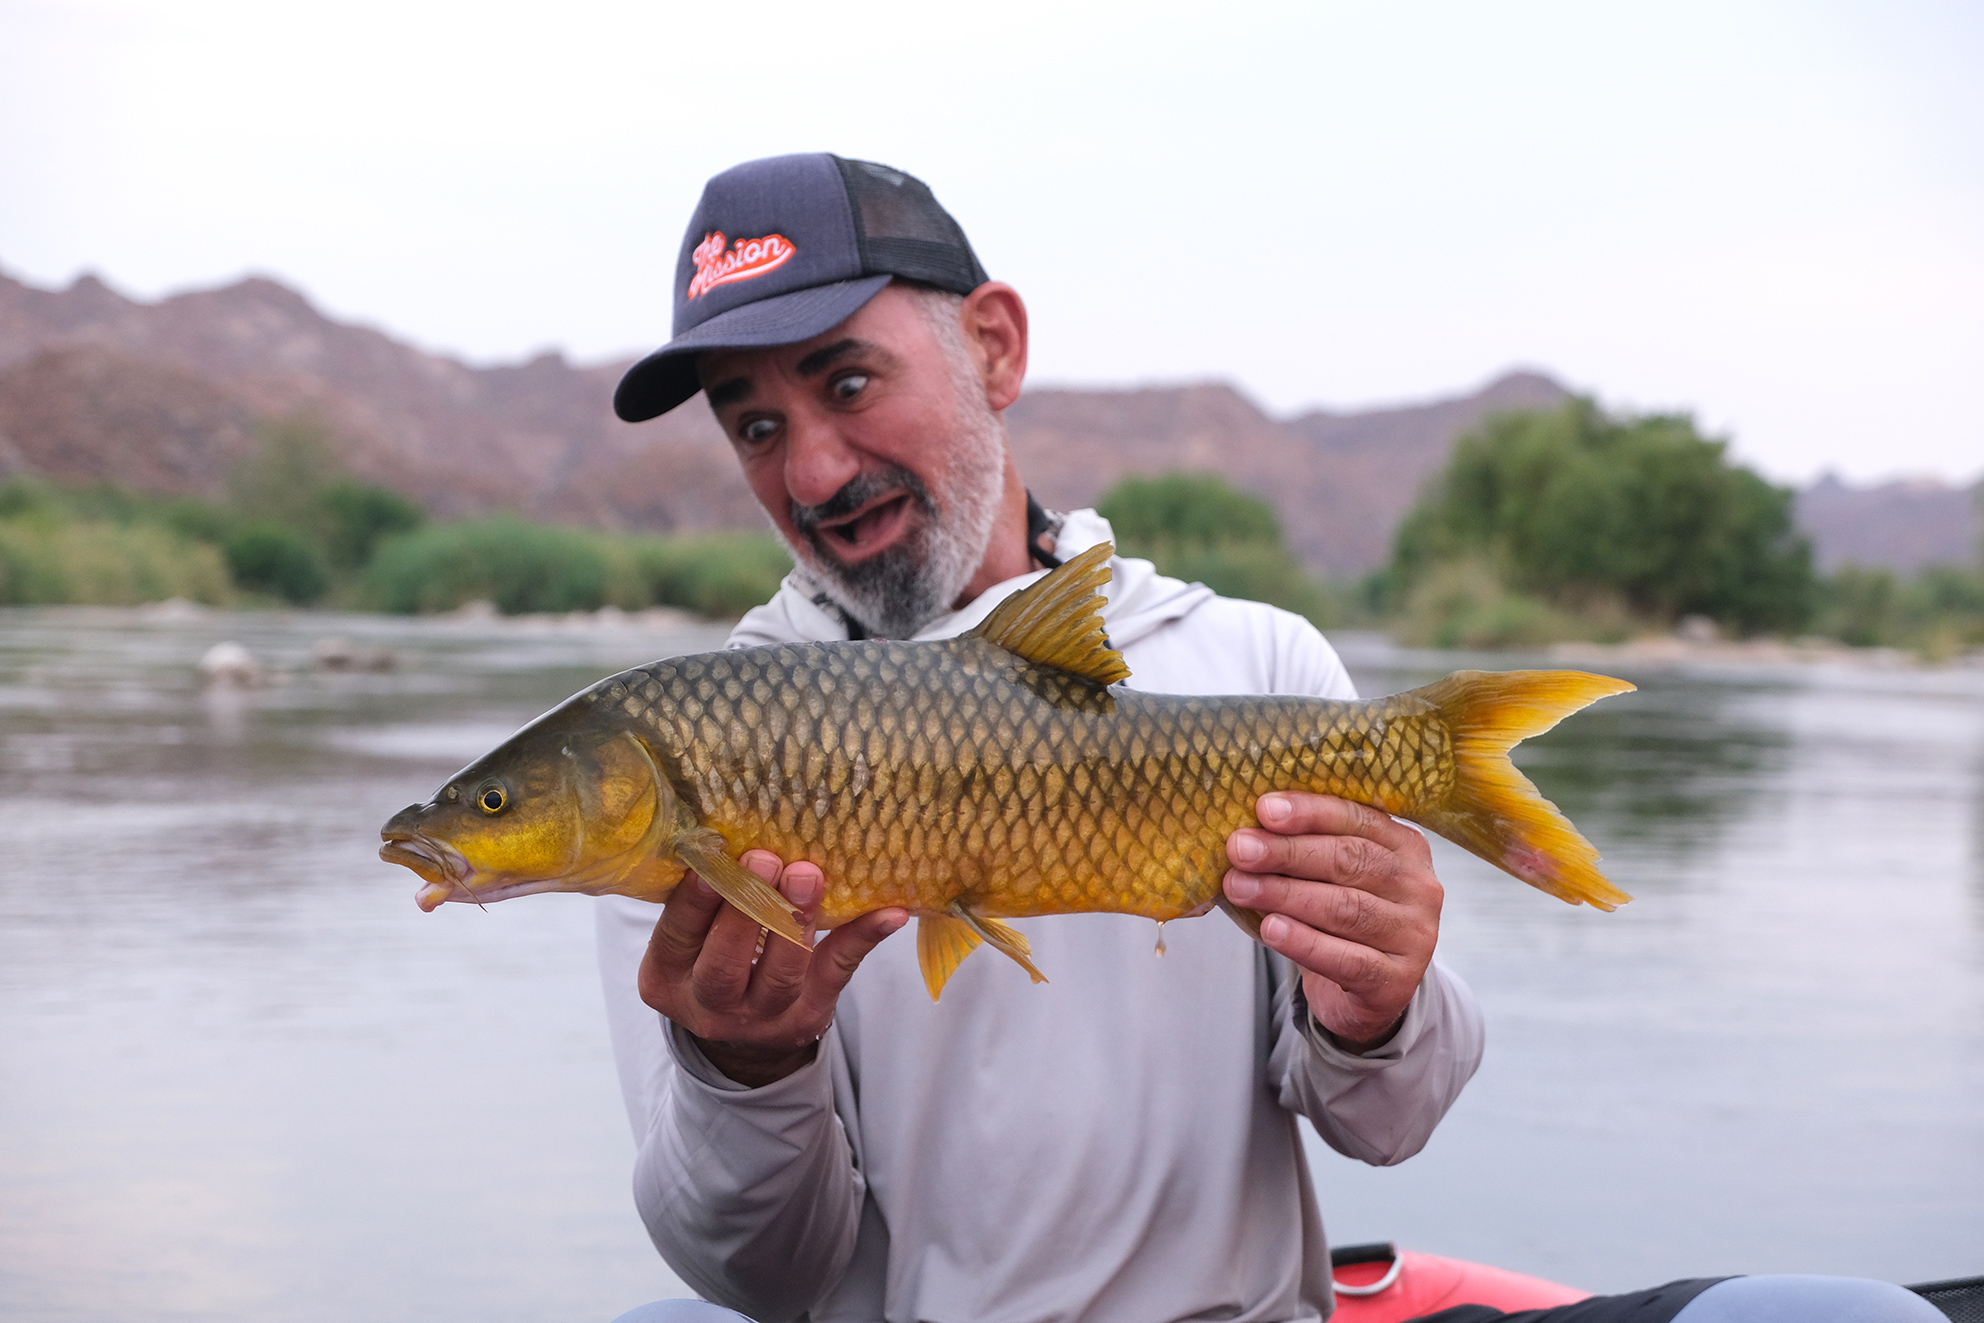 Platon Trakoshis with an Orange river smallmouth yellowfish